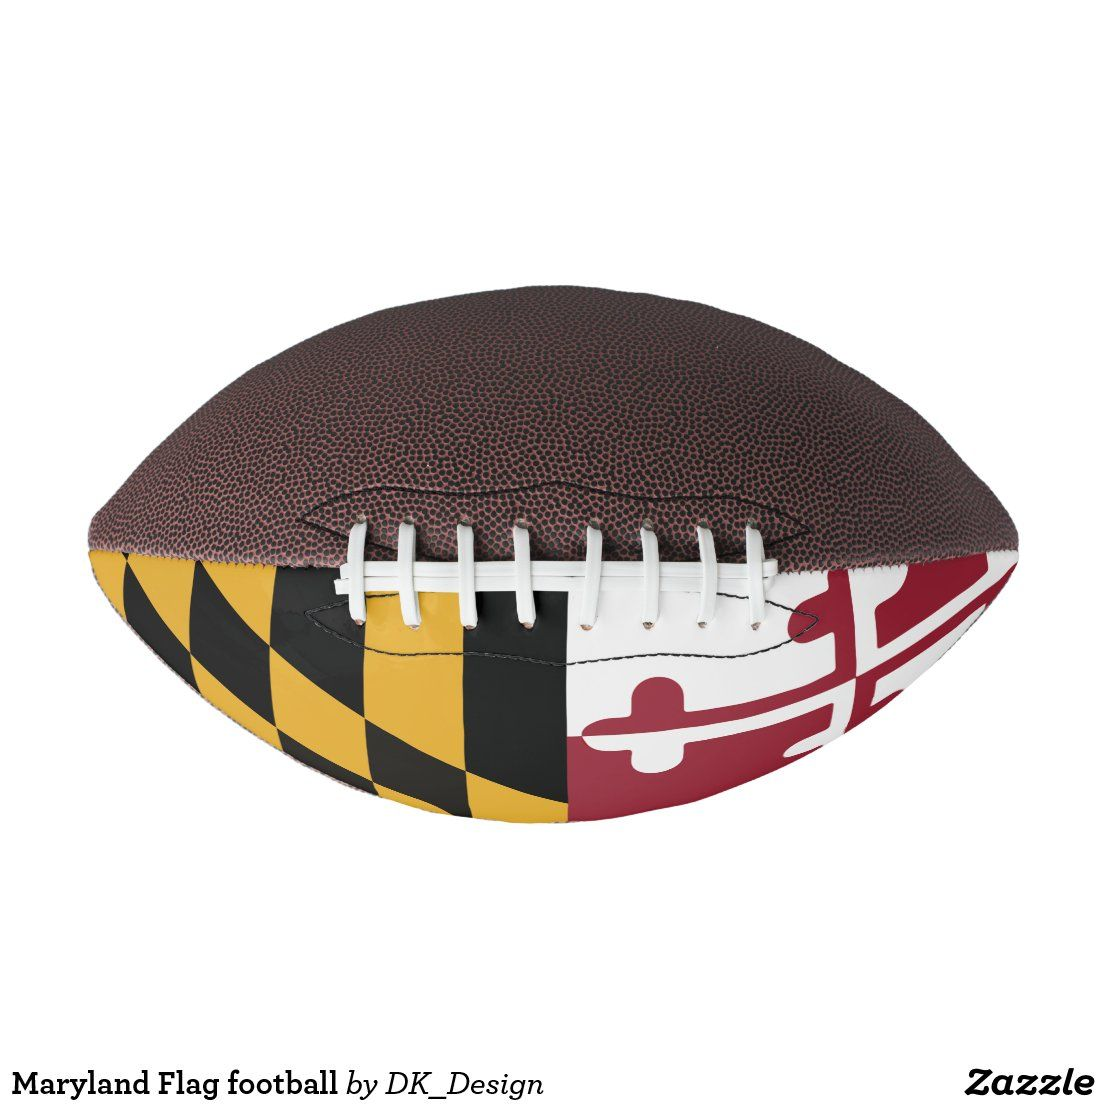 Maryland Flag Football Zazzle Com In 2020 Flag Football Maryland Flag Football